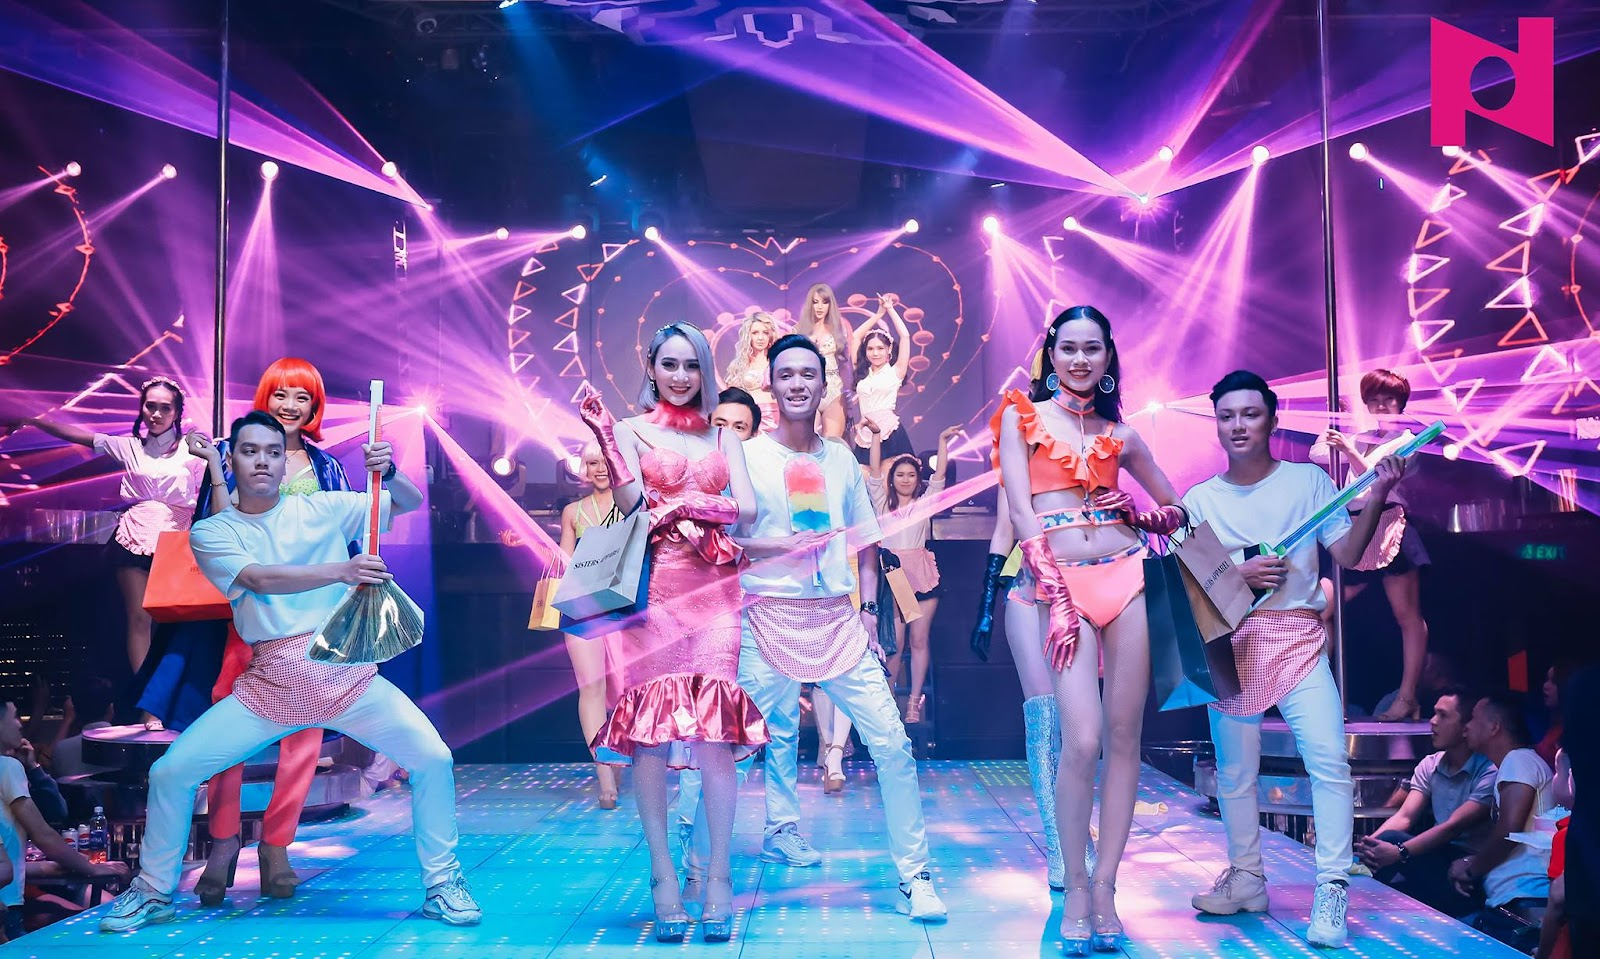 New Phuong Dong Club is a great way to spend your Danang nightlife